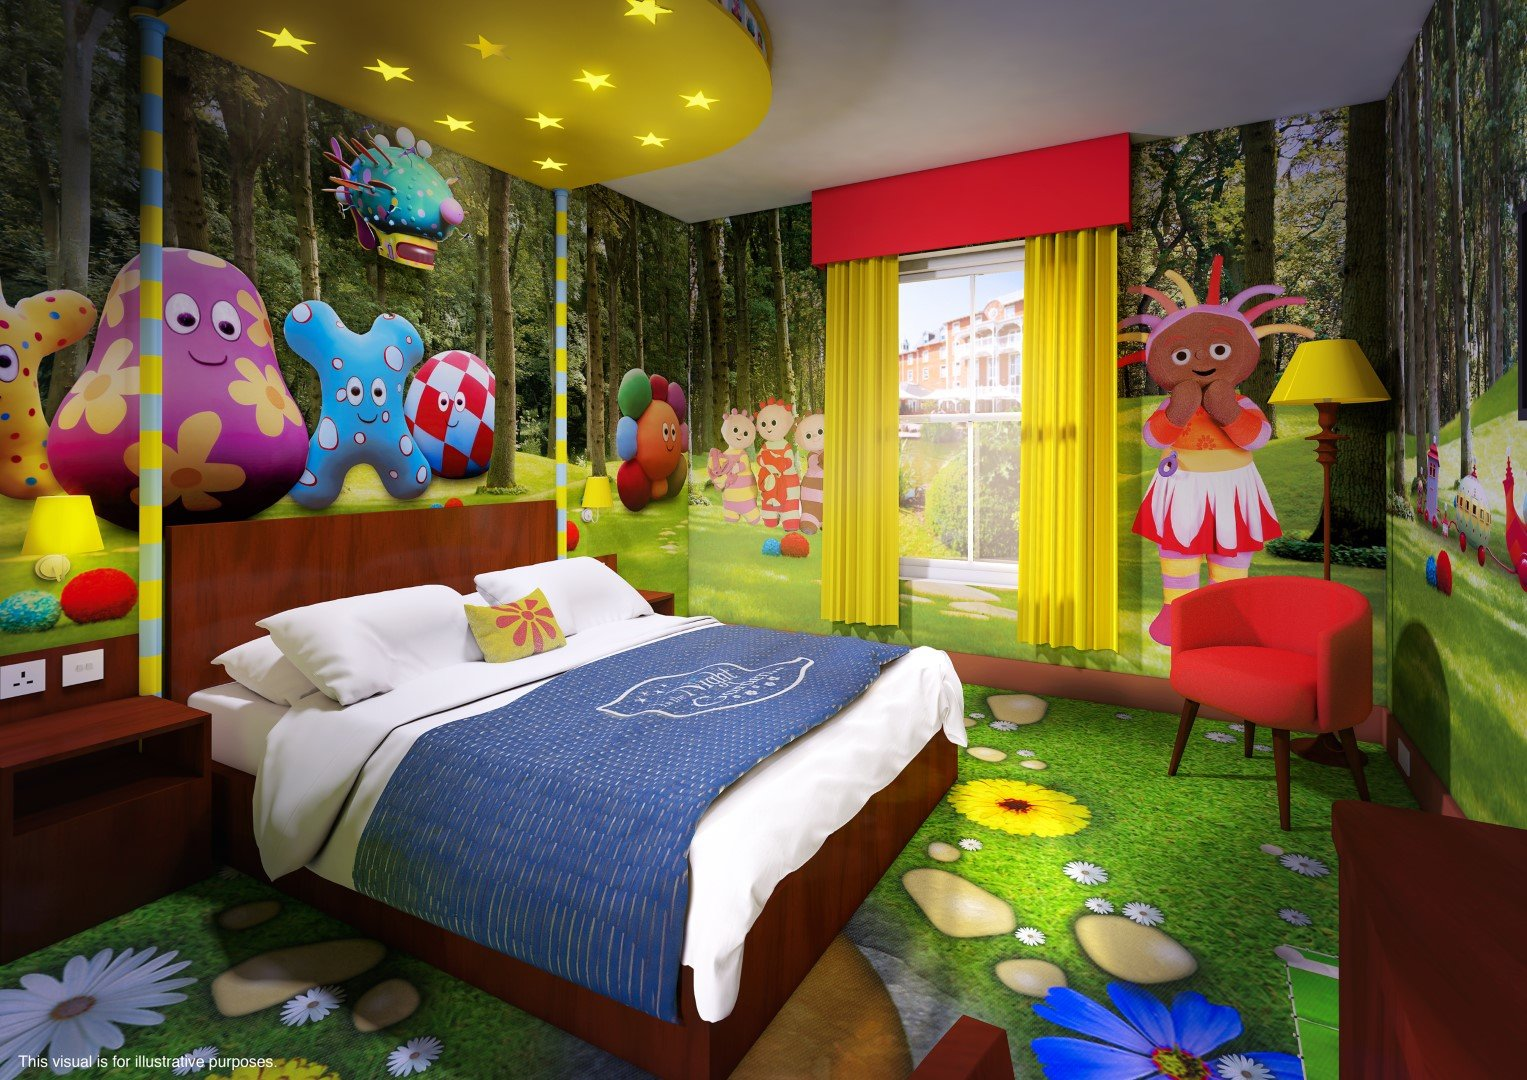 Alton Towers Cbeebies Land Hotel Themed Bedrooms Unveiled